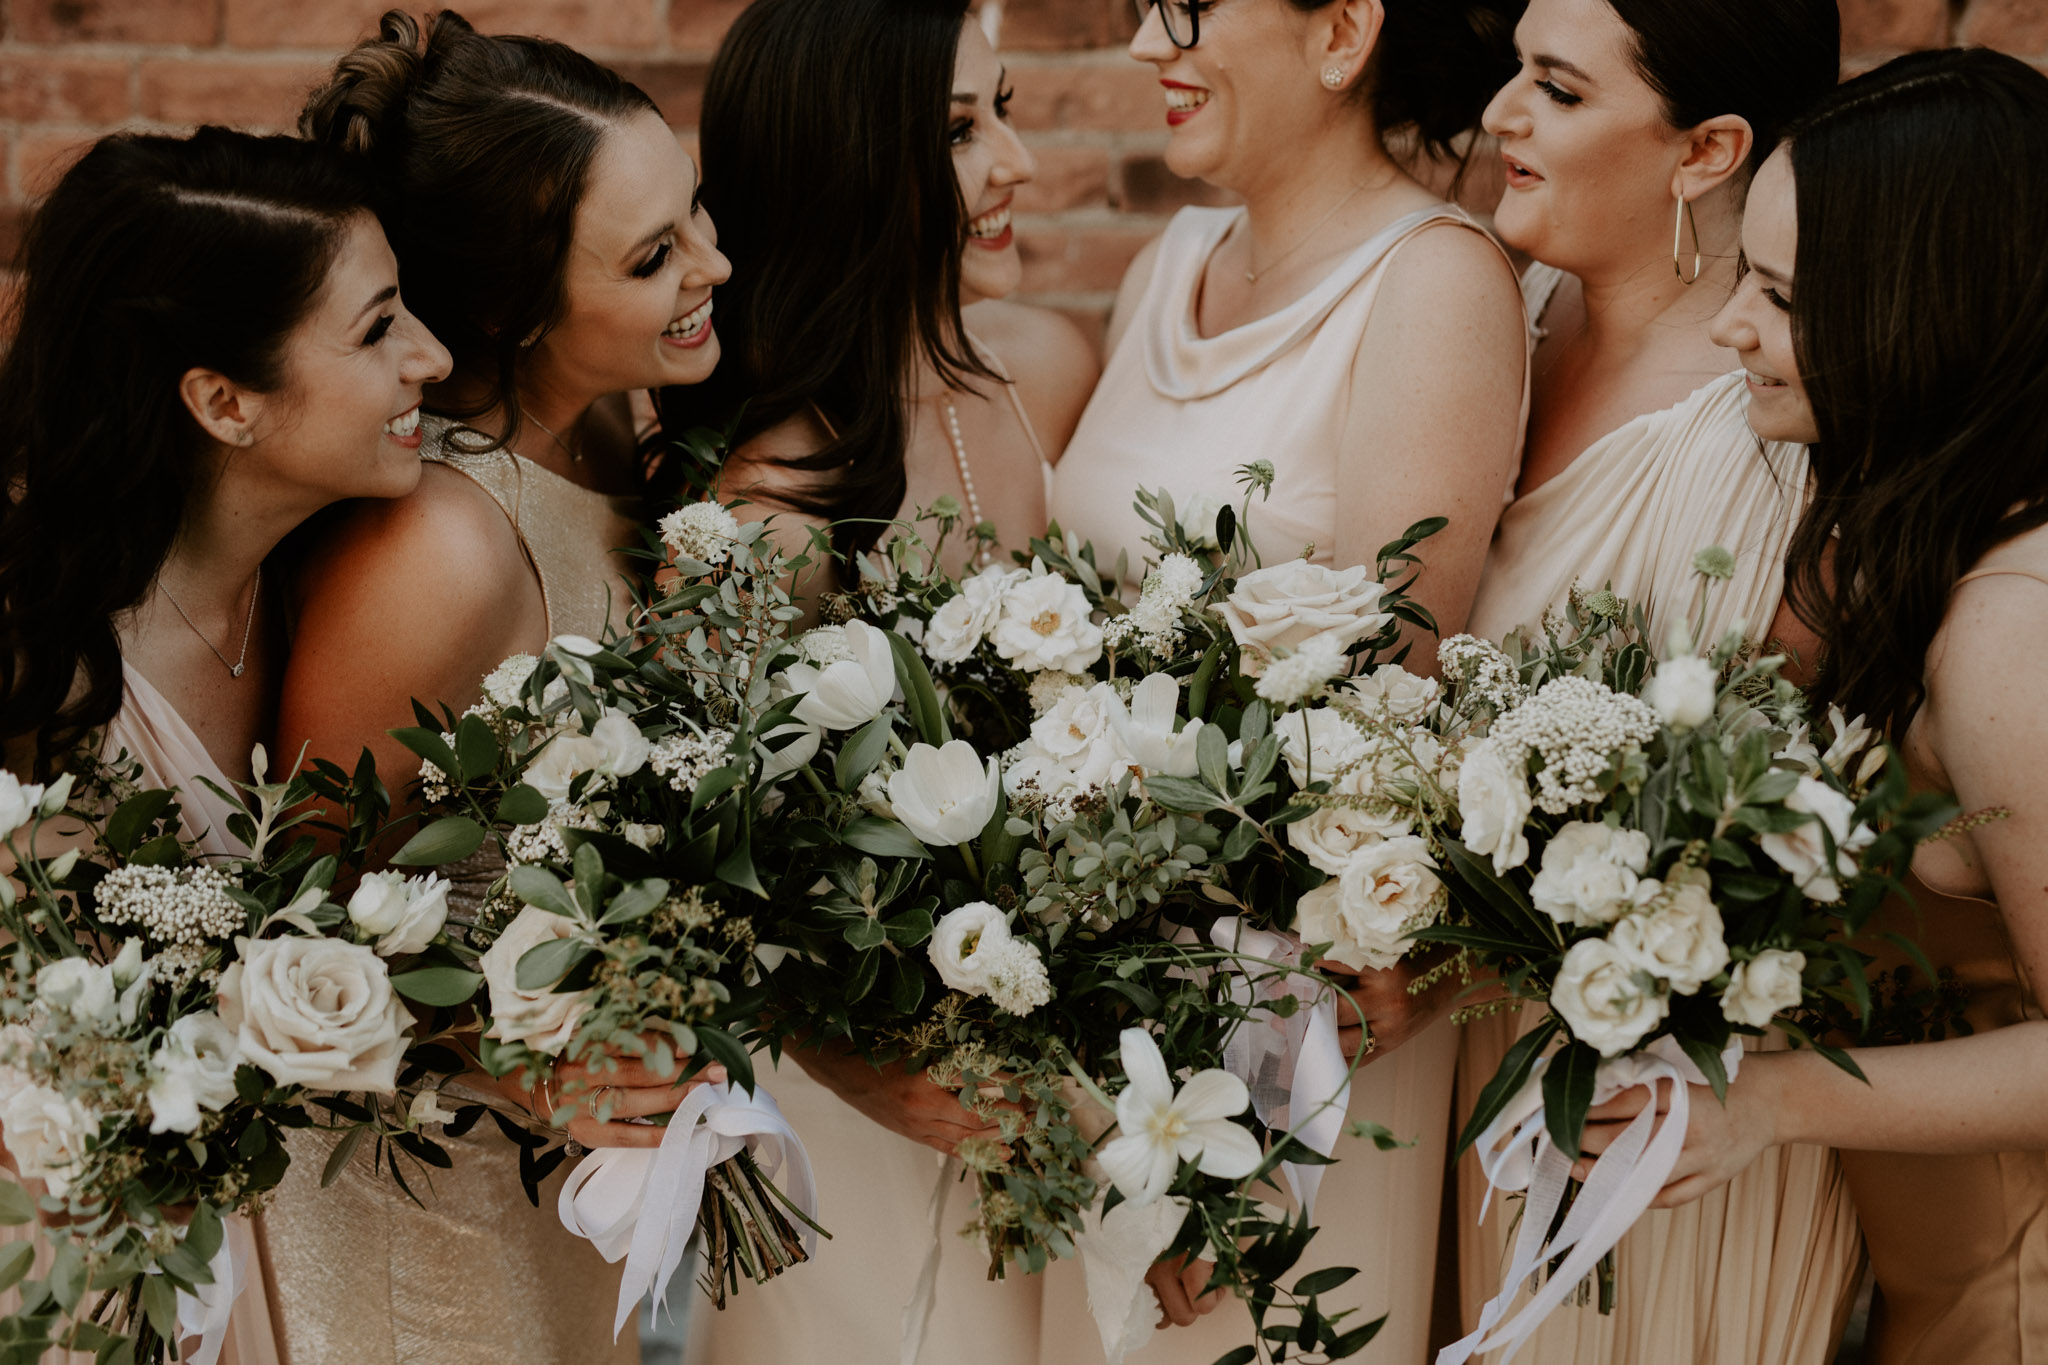 Archeo Wedding - Bridesmaids with bouquets by Florist Tanya List